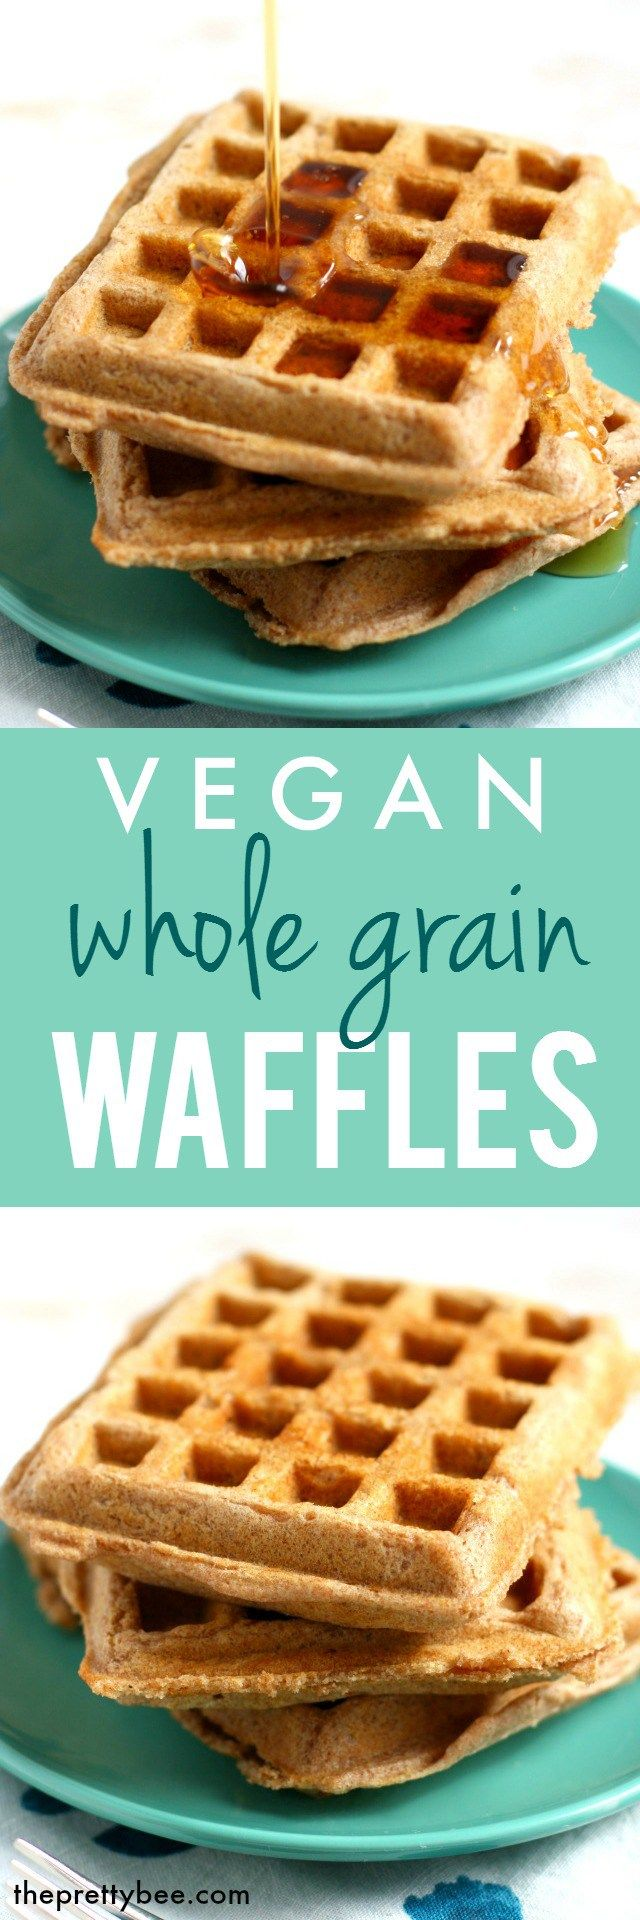 Whole Spelt Vanilla Waffles with Strawberries | Recipe | Lights ...